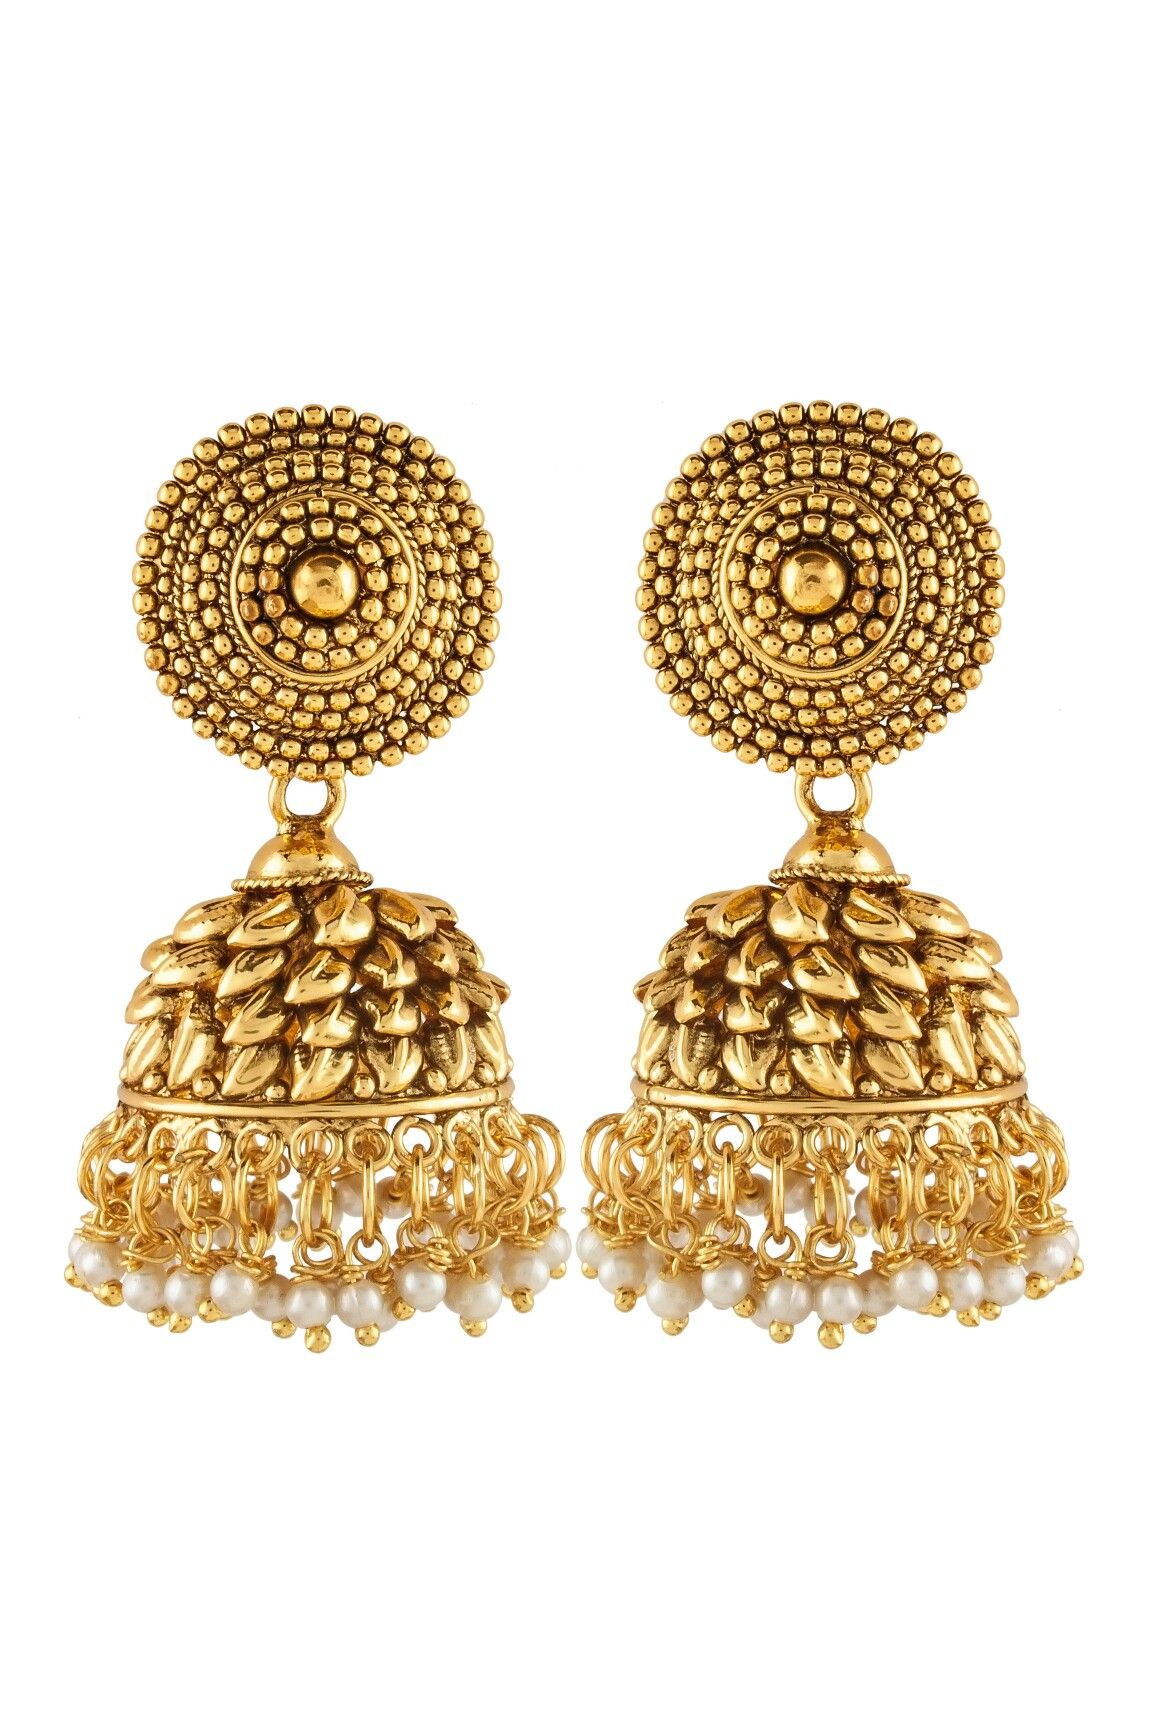 5c64c7a3a Antique Gold Plated Big size jhumka Earrings Price Rs.650 Contact or whtsup  on +918080256582 #antique #copper #jhumki #earring #south #indian #style  #jhumki ...